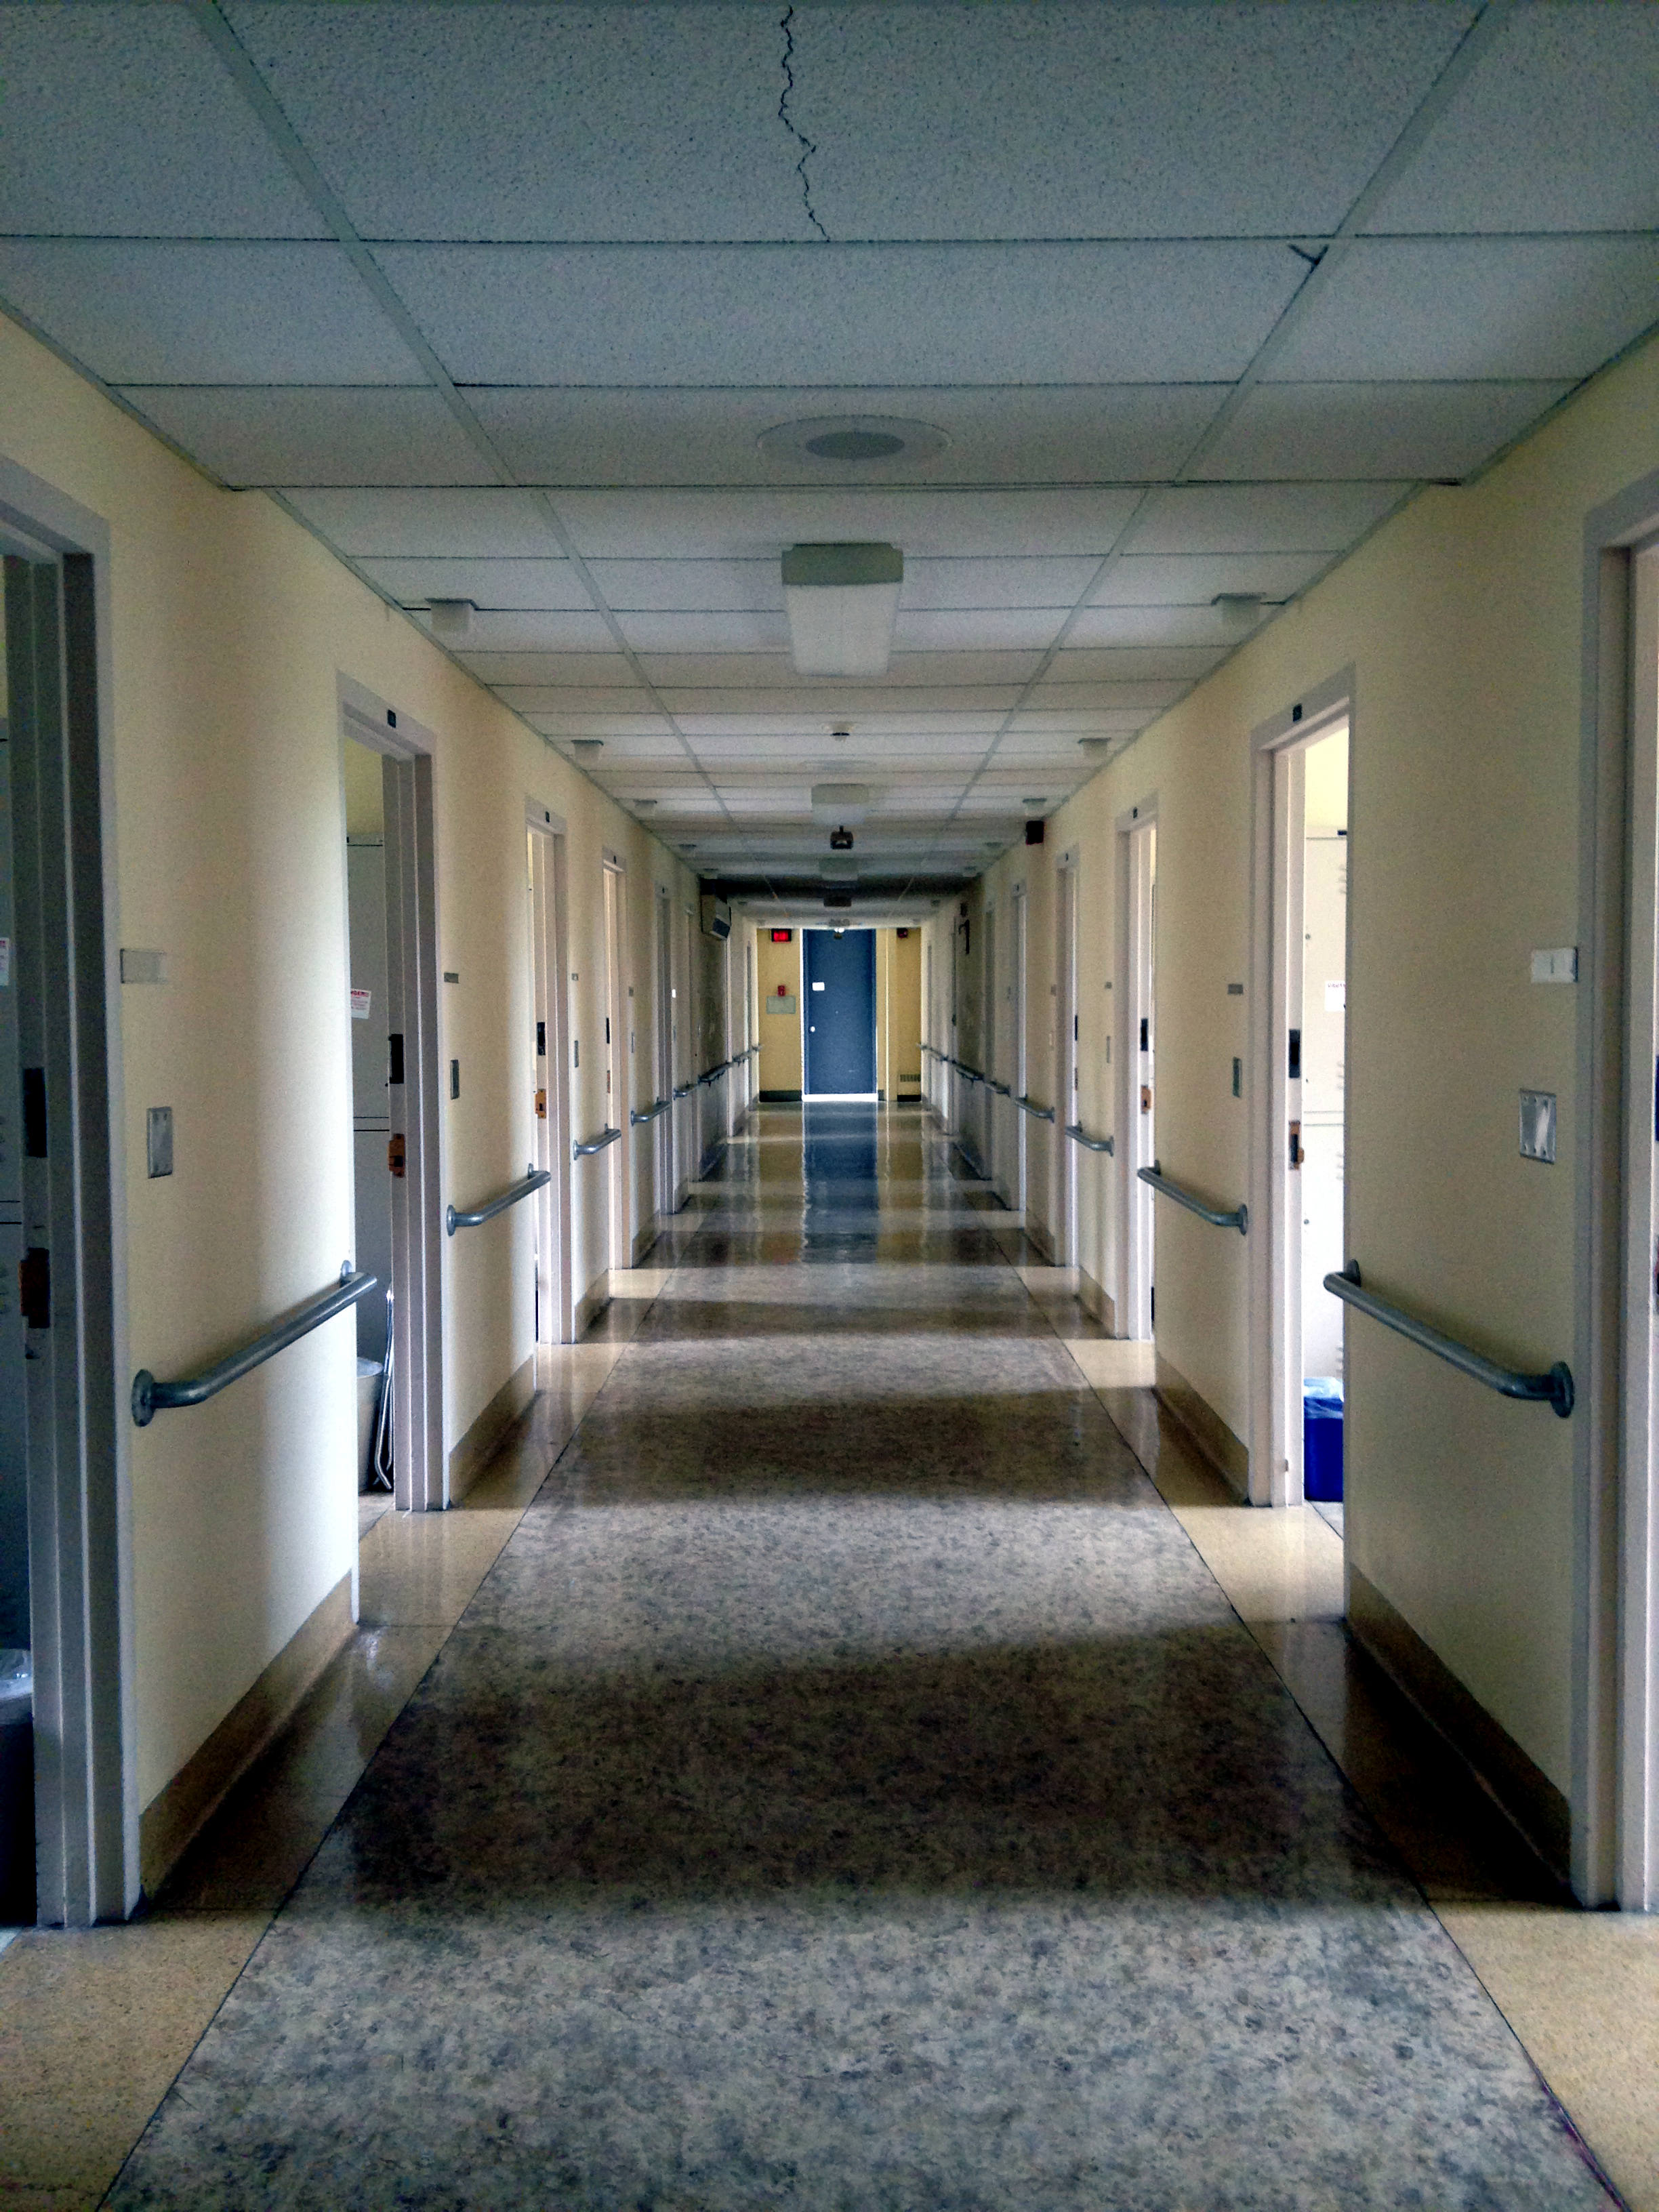 Hallway in Elliott Hall Medical Building